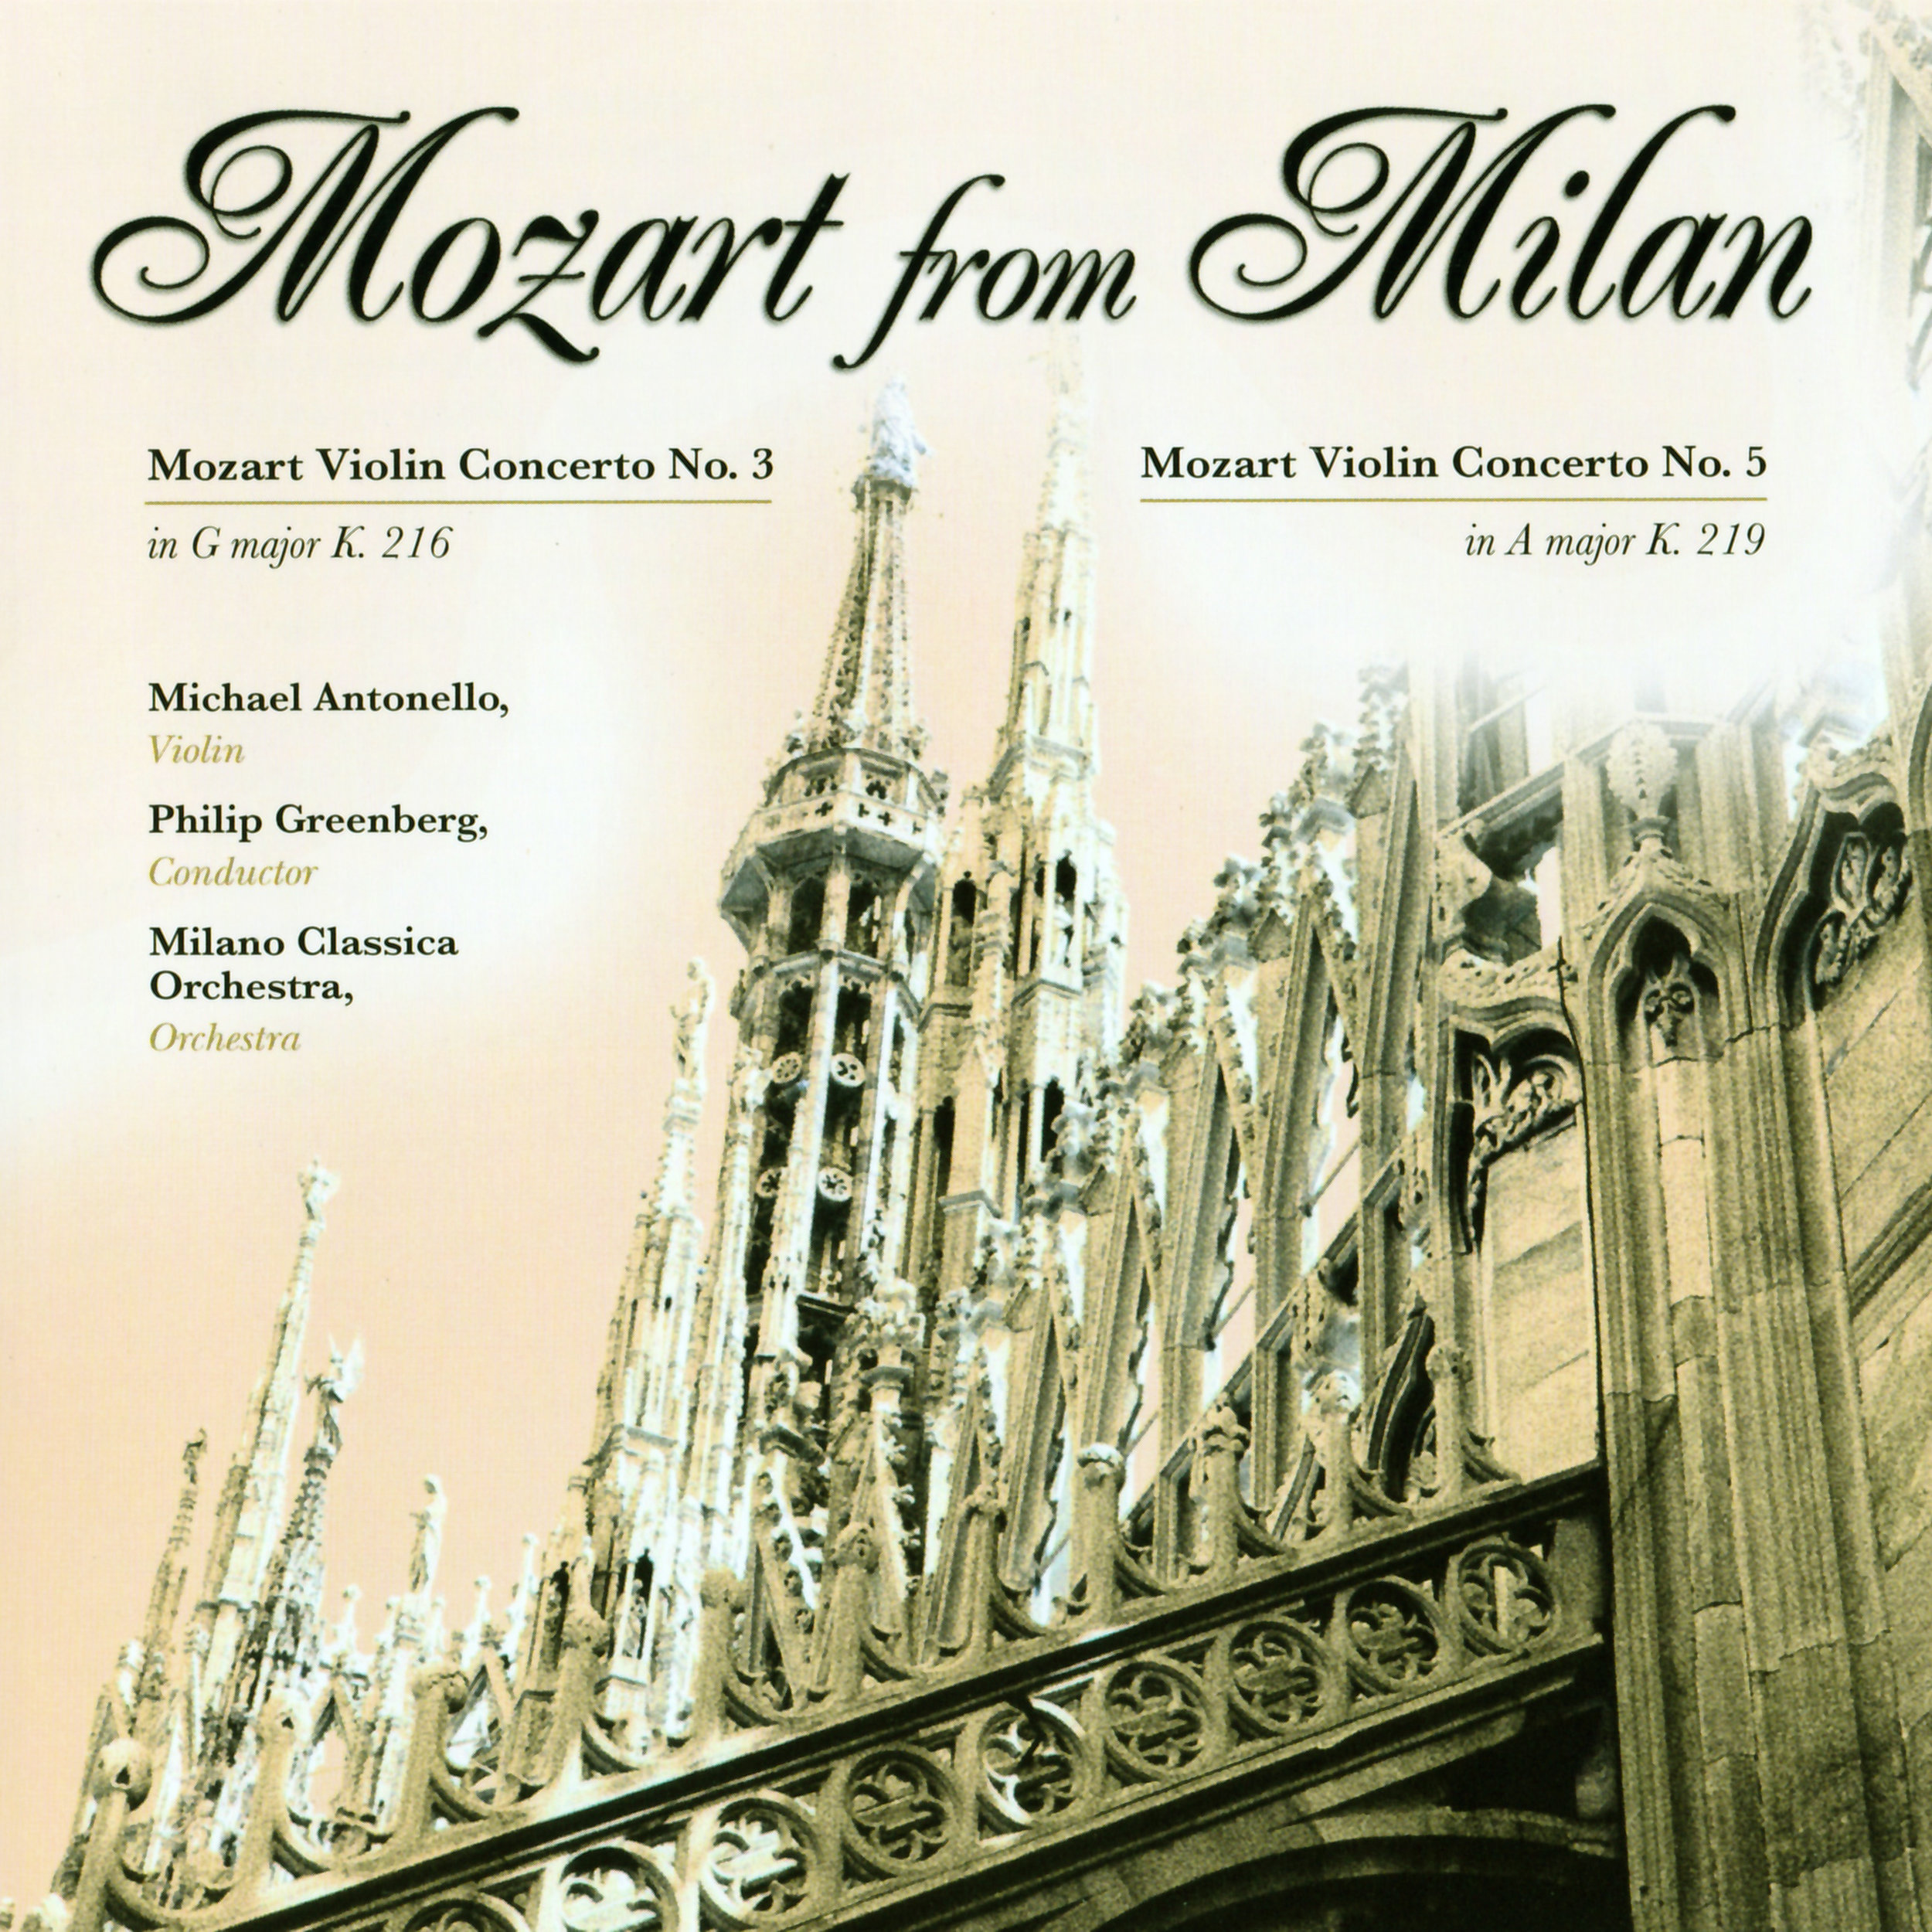 Read the program notes of all 18 CDs of Michael Antonello